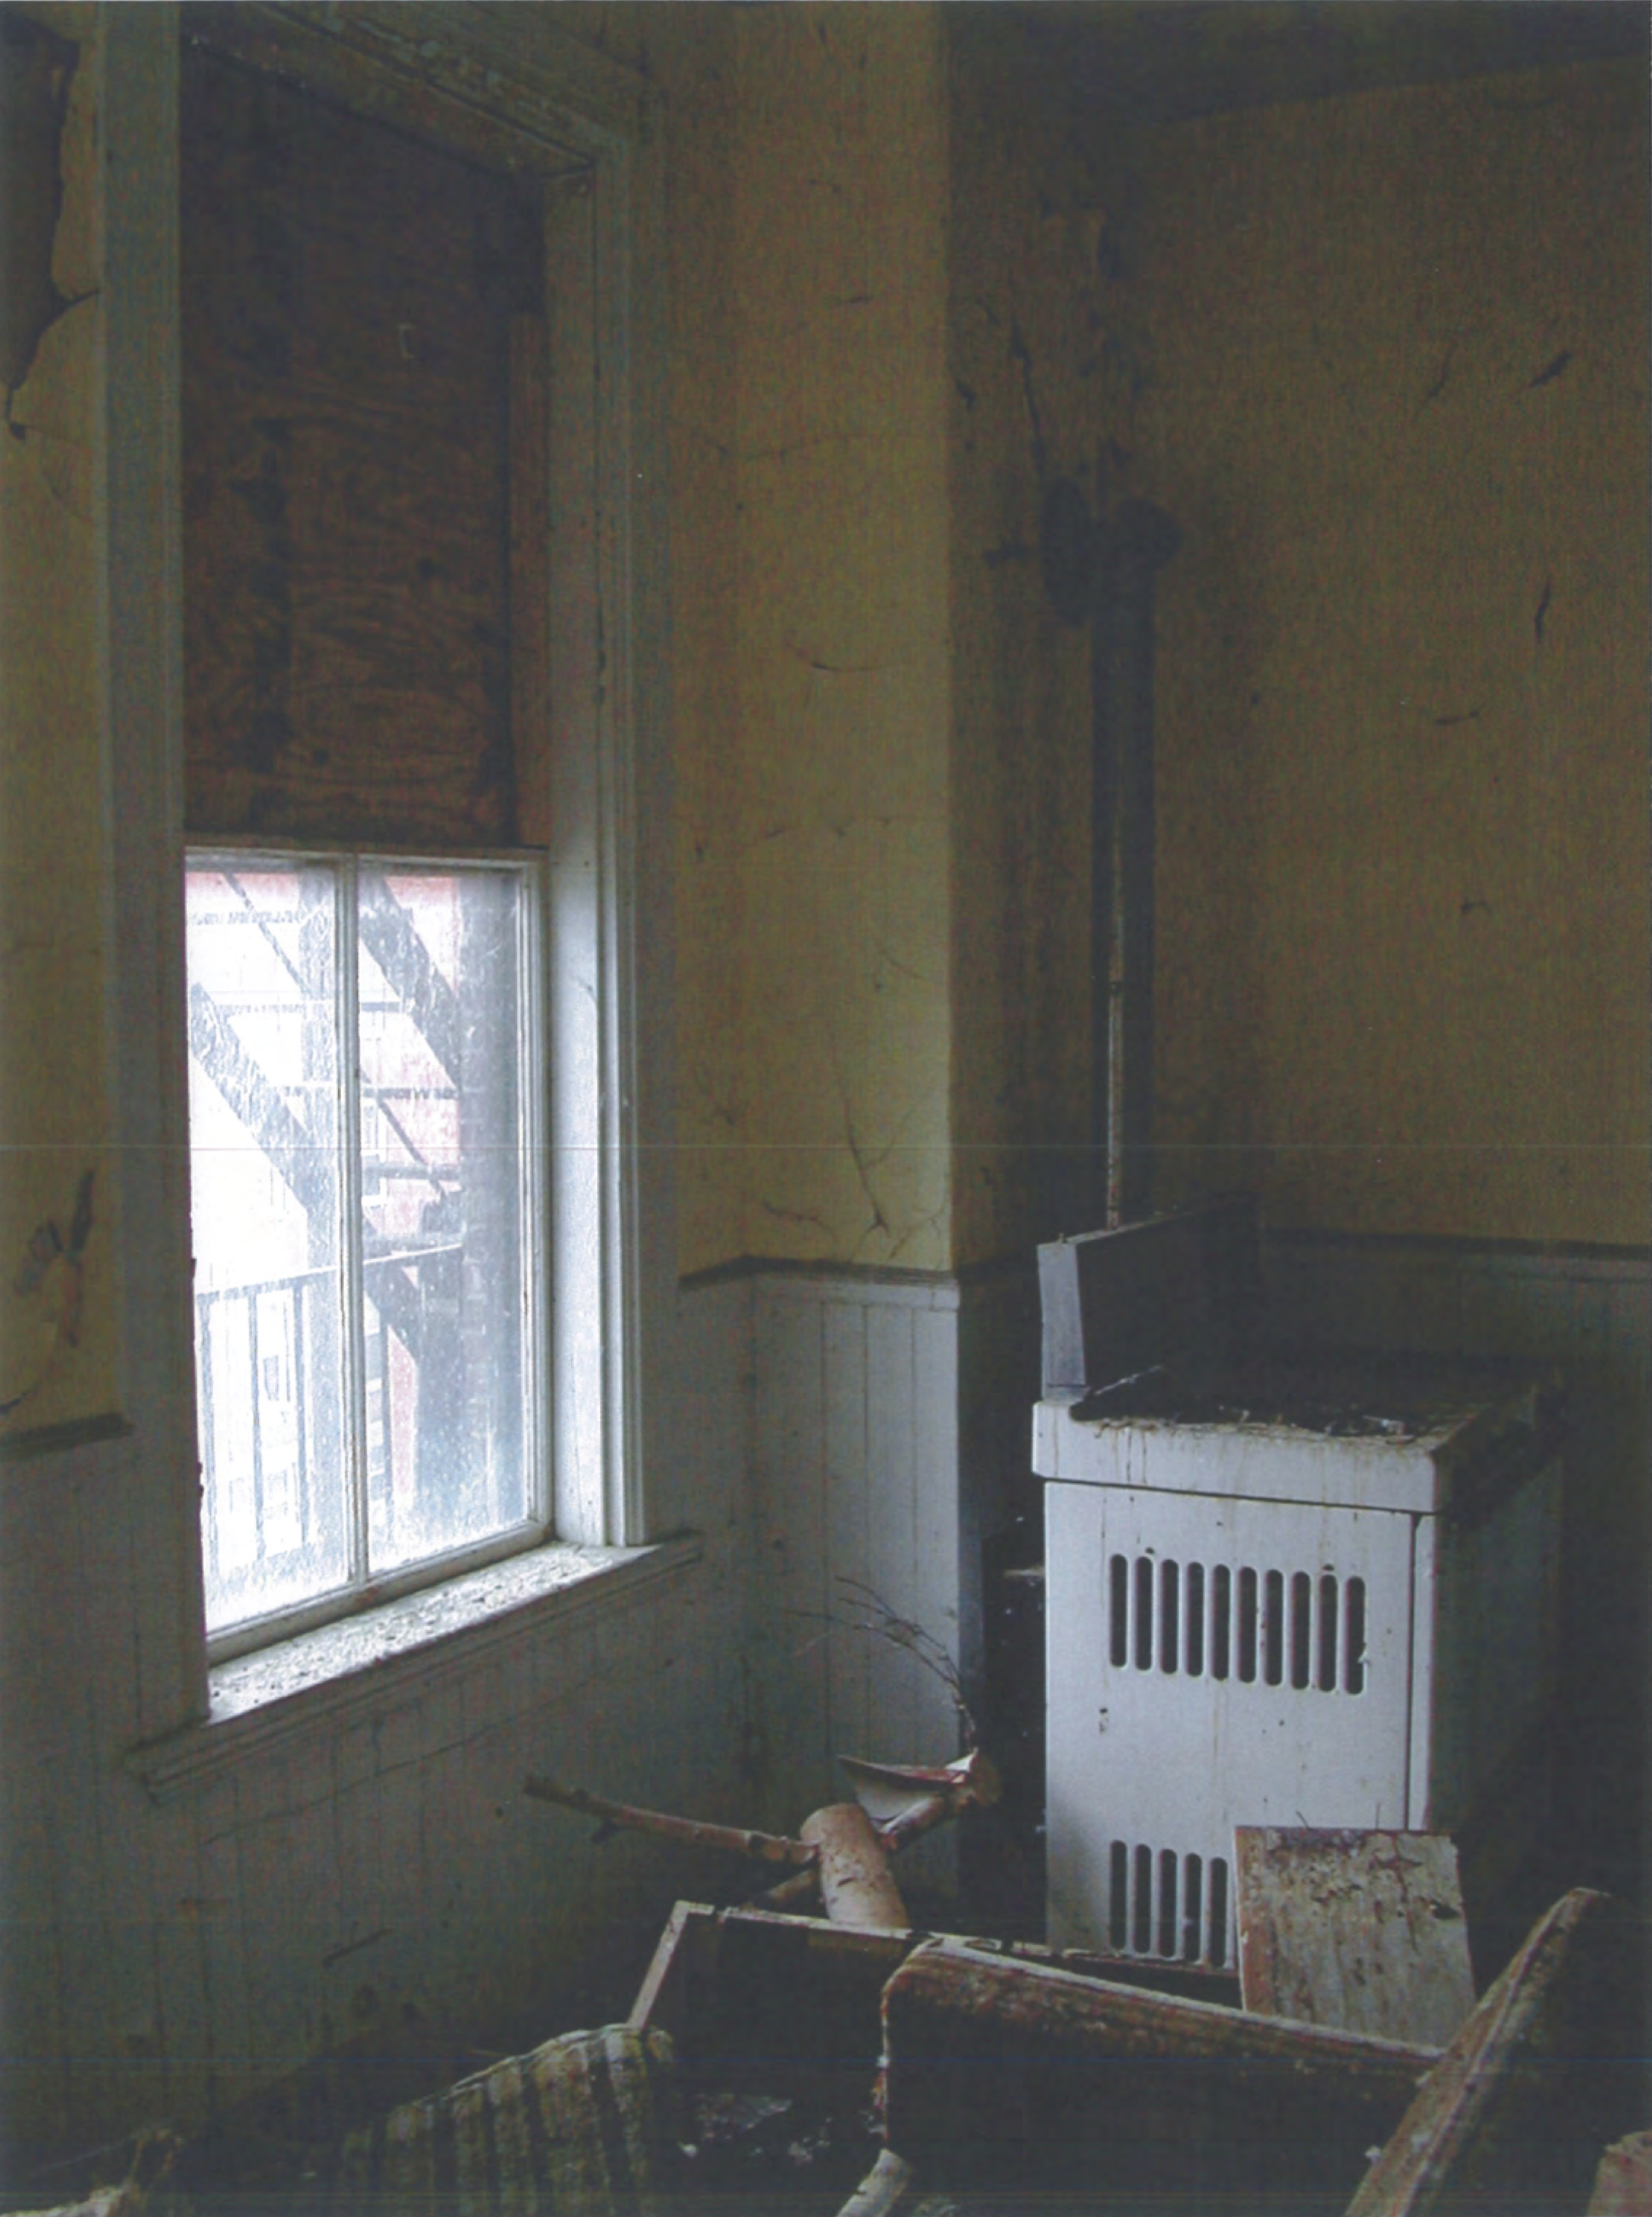 Many years of paint and wallpaper were removed during the restoration.